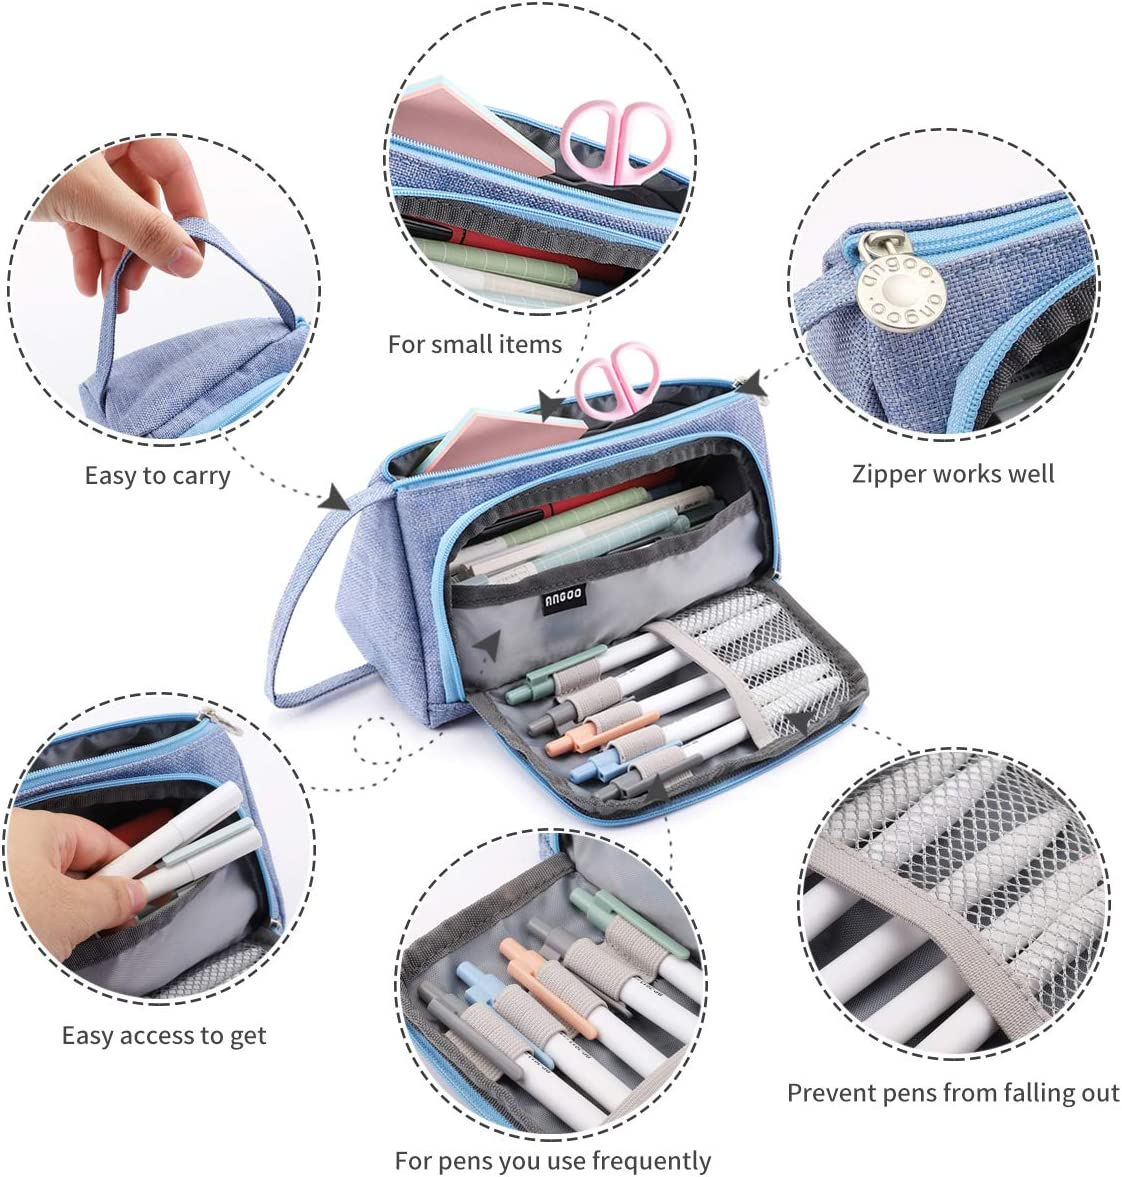 Drak Gray Yloves Big Capacity Pencil Pen Stationery Bag Pouch Box Organizer Holder with 2 PCS Index Tabs for School Office Pencil Case